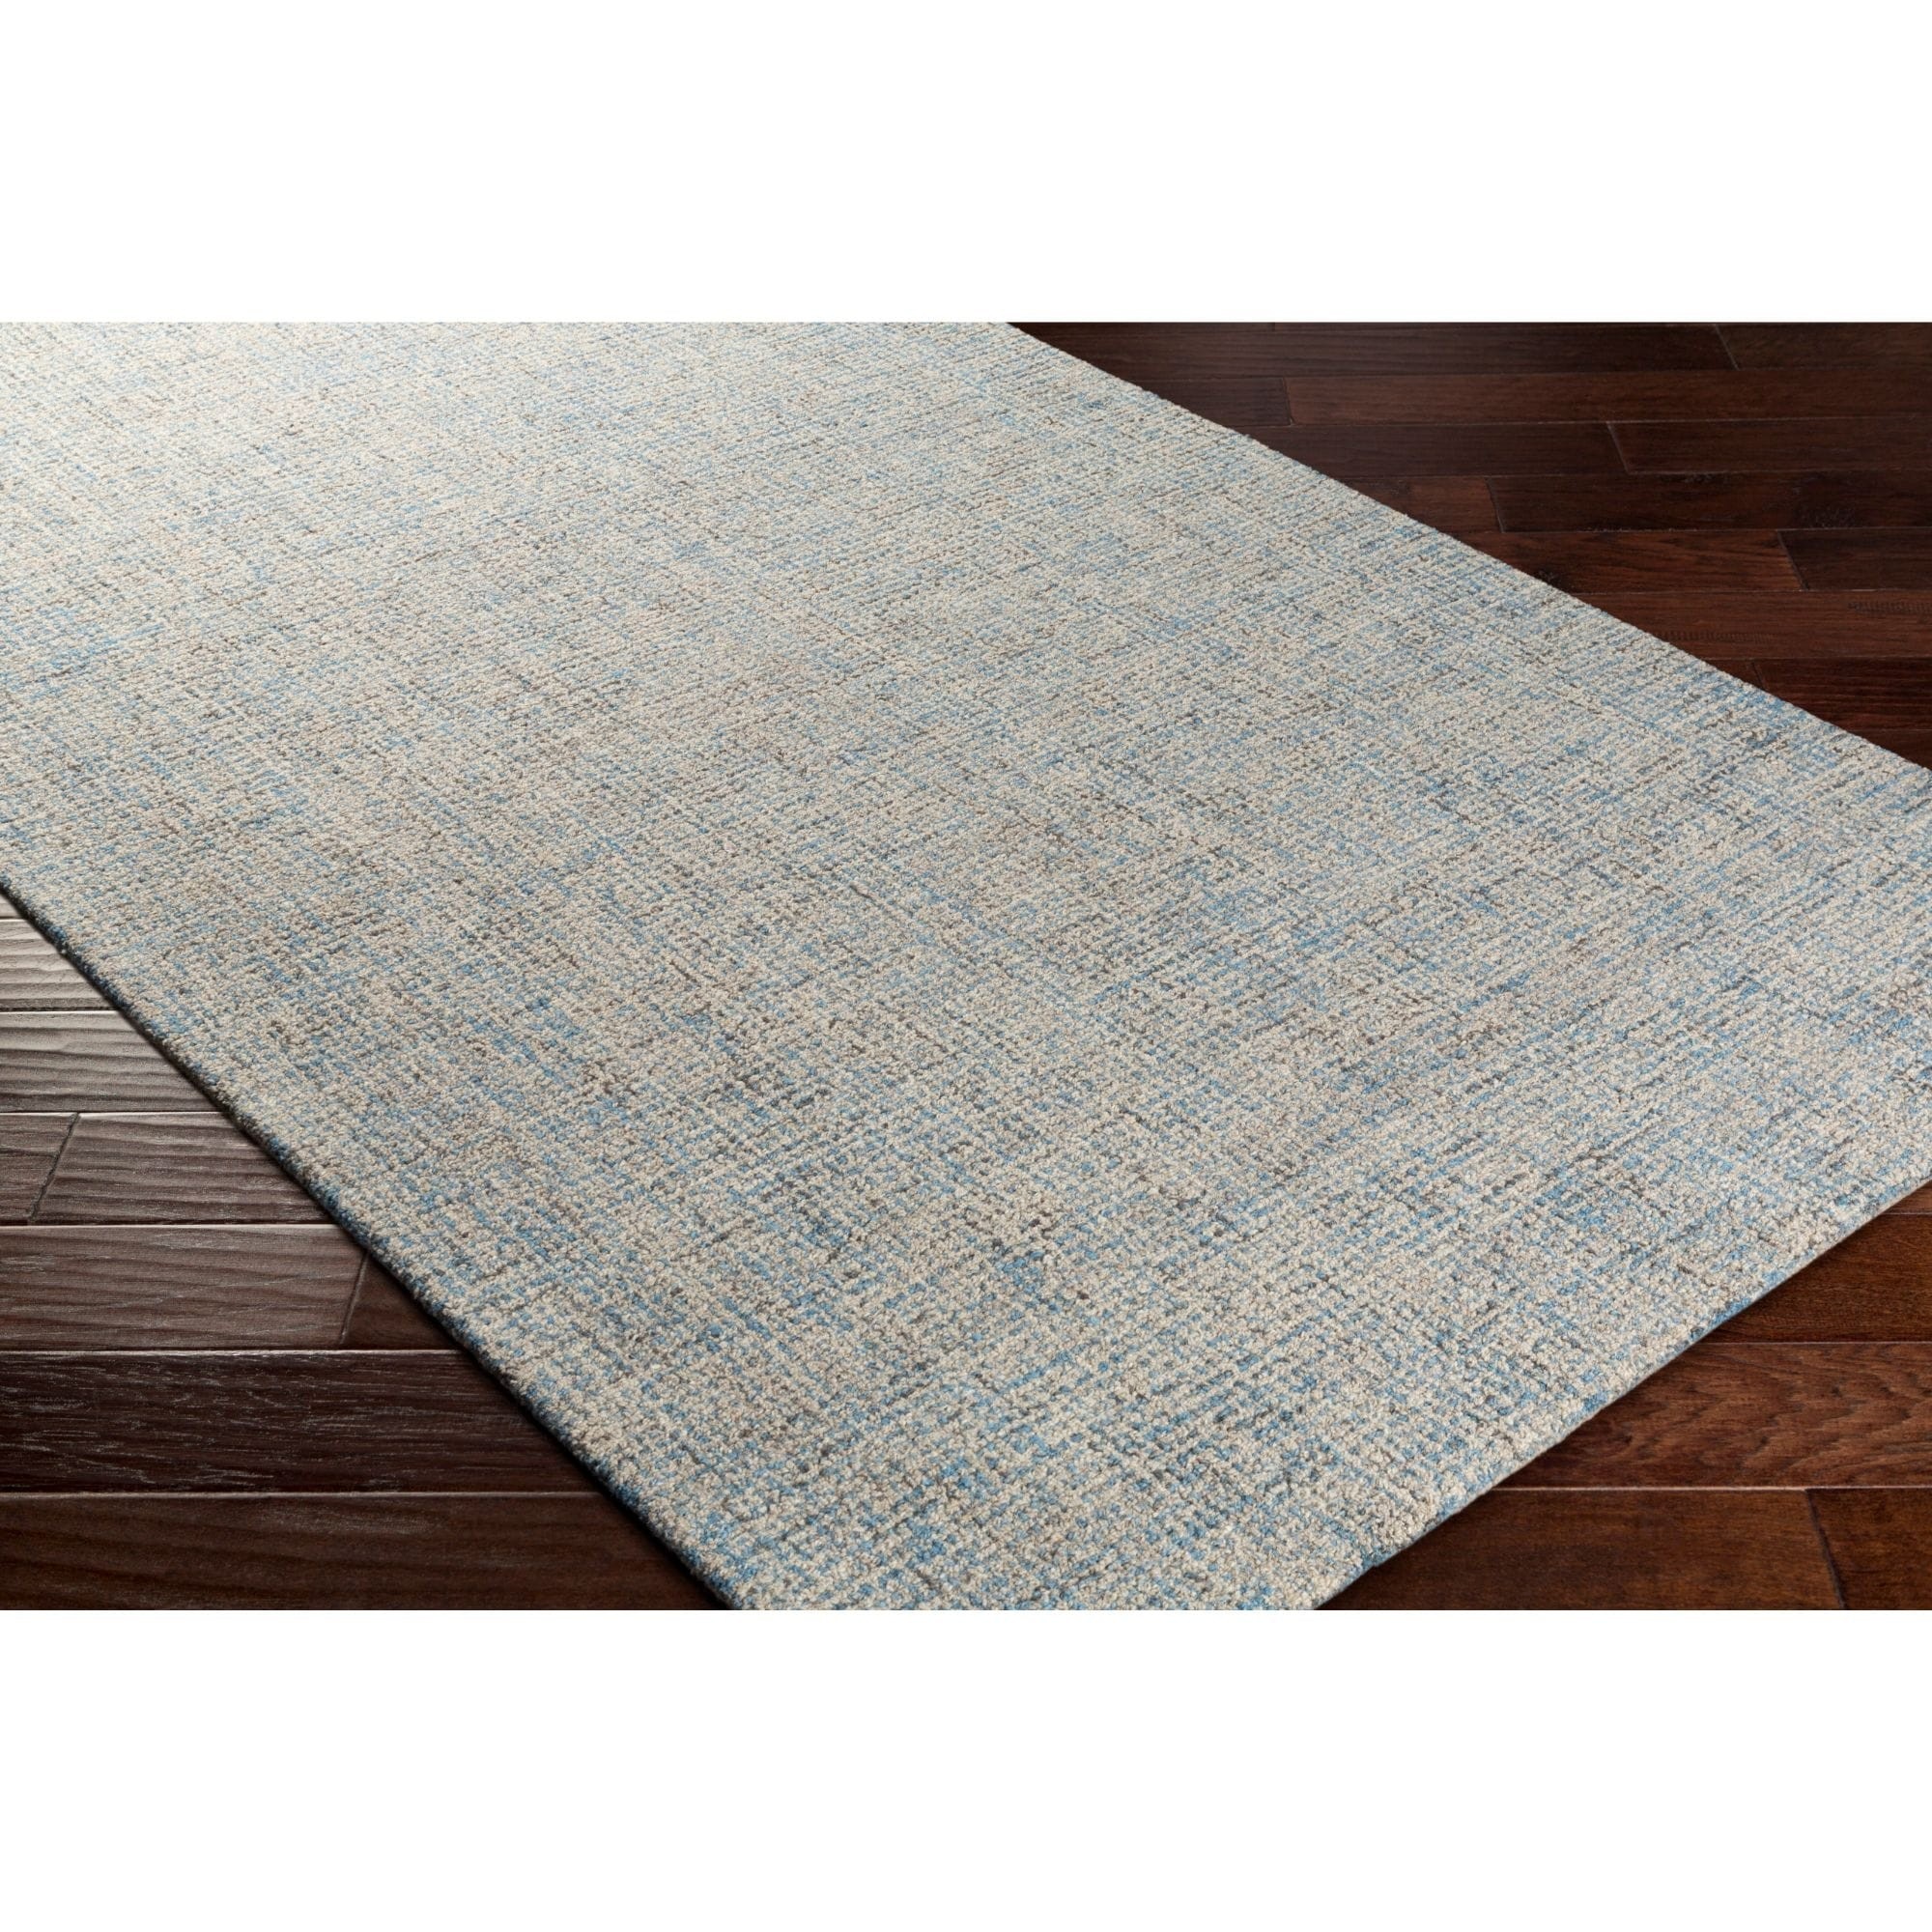 5 X 7 5 Beige And Denim Blue Rectangular Area Throw Rug Overstock 28686561